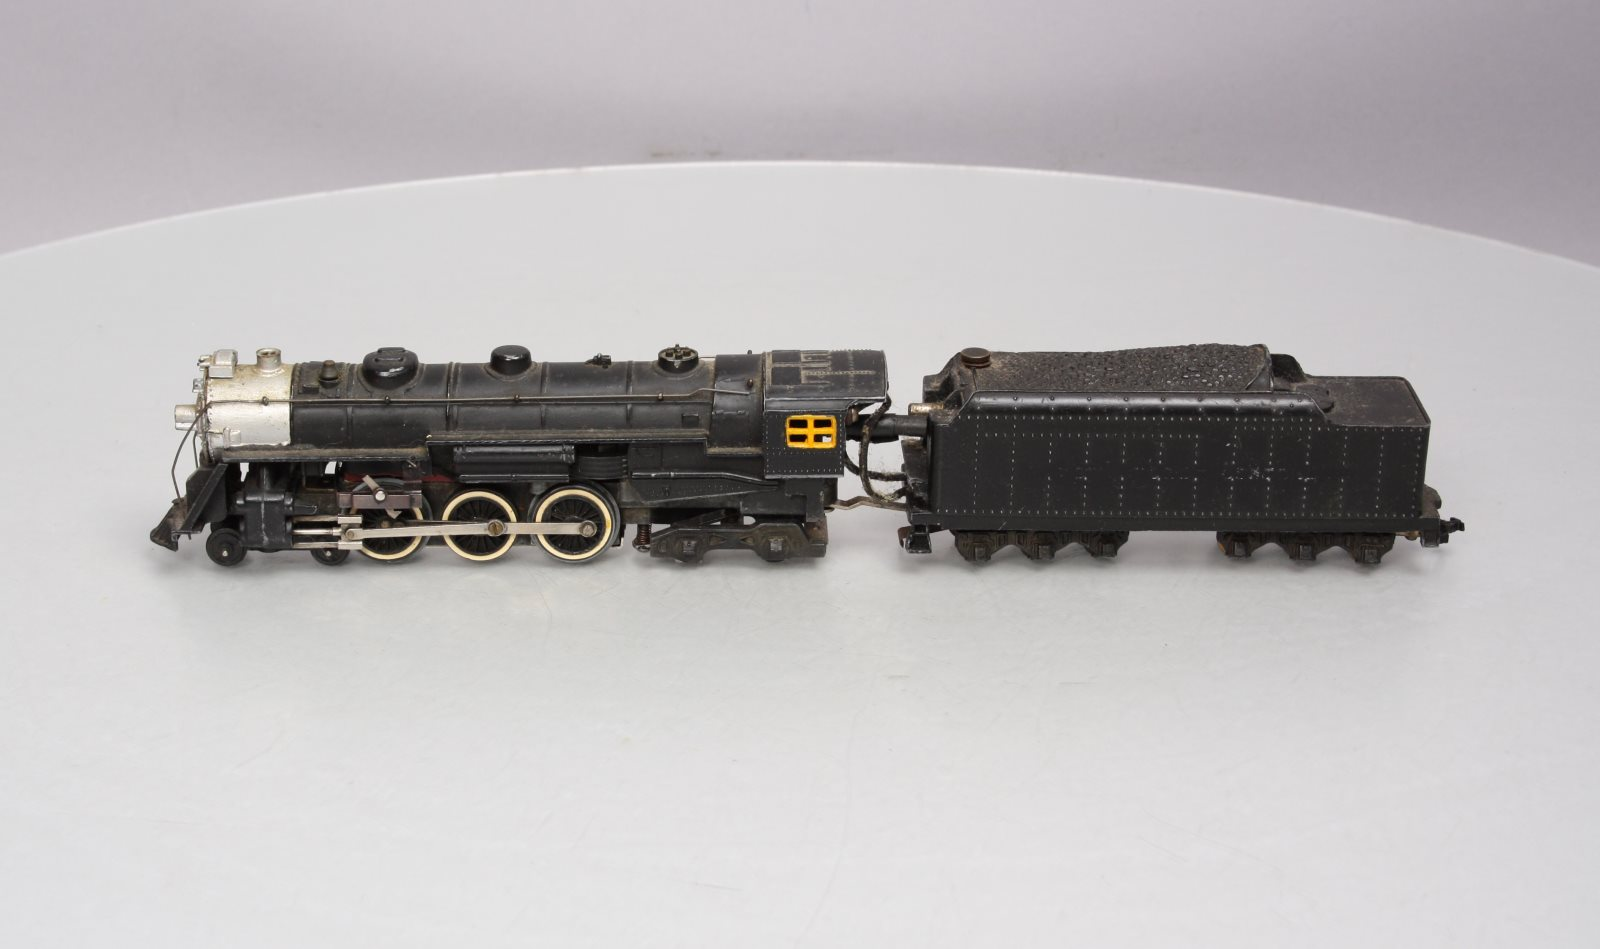 Replacement Front Tender Truck for American Flyer Steam Engines